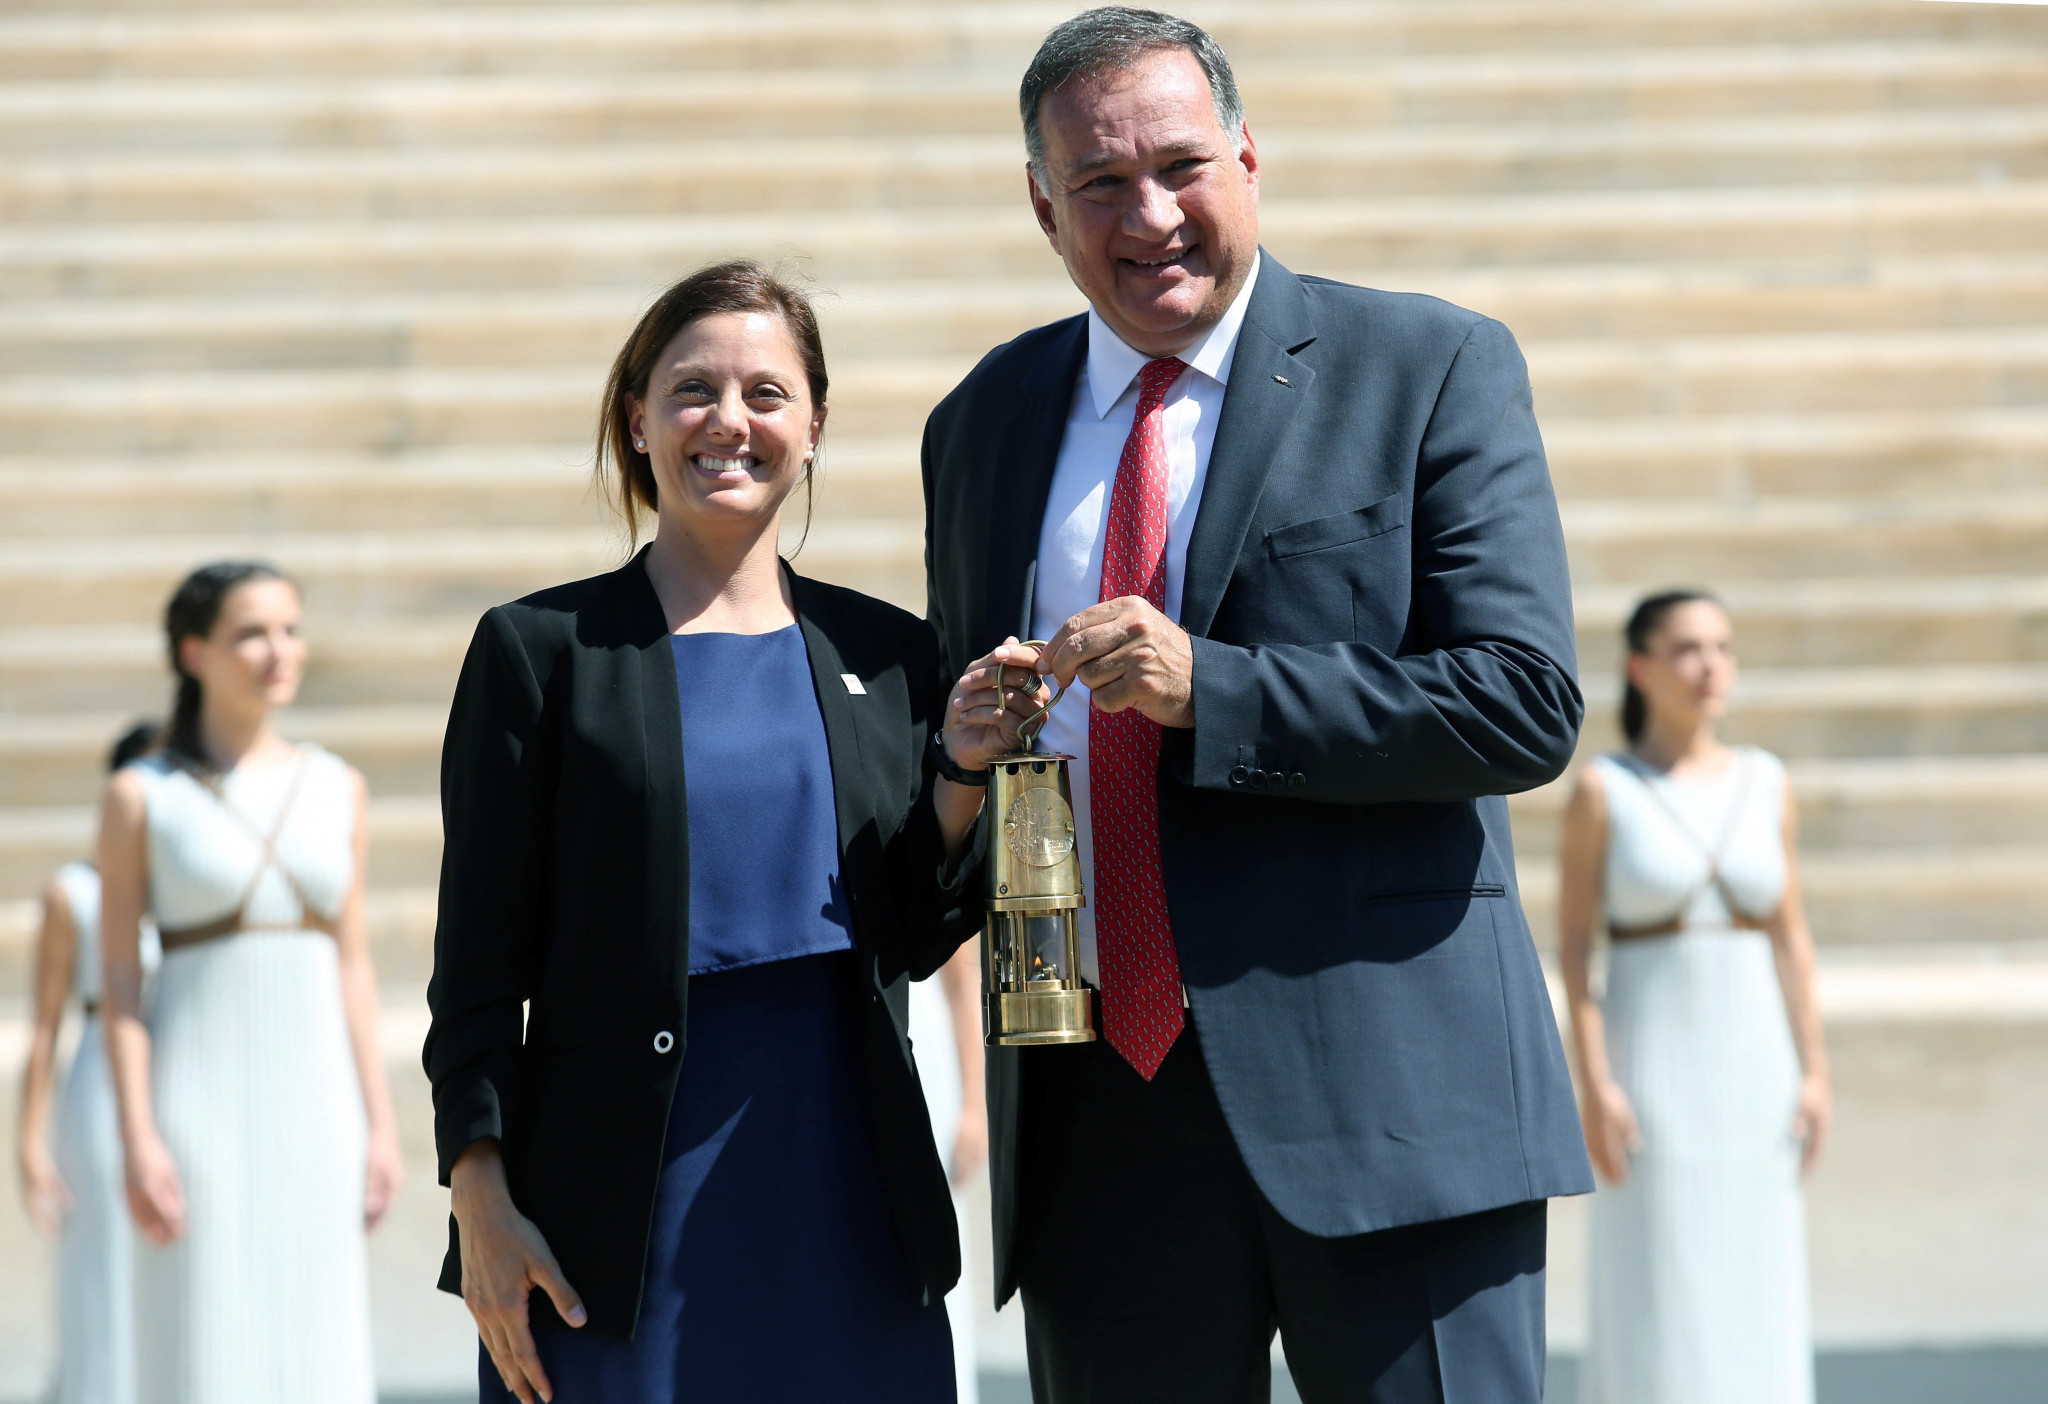 Lausanne 2020 President Virginie Faivre received the flame from Hellenic Olympic Committee President Spyros Capralos ©Hellenic Olympic Committee